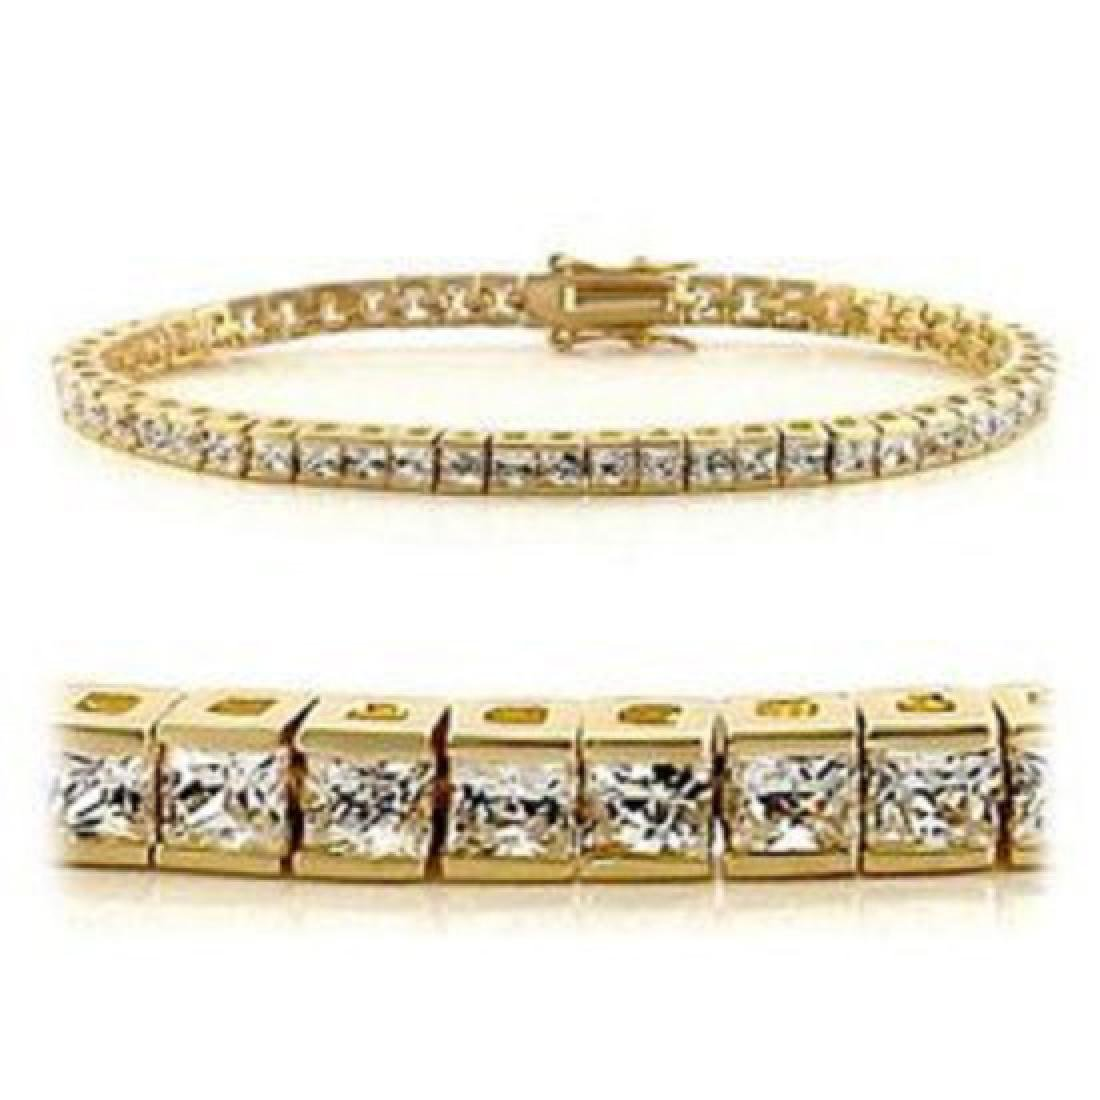 0.84 CT Diamond Designer Bracelet $1615